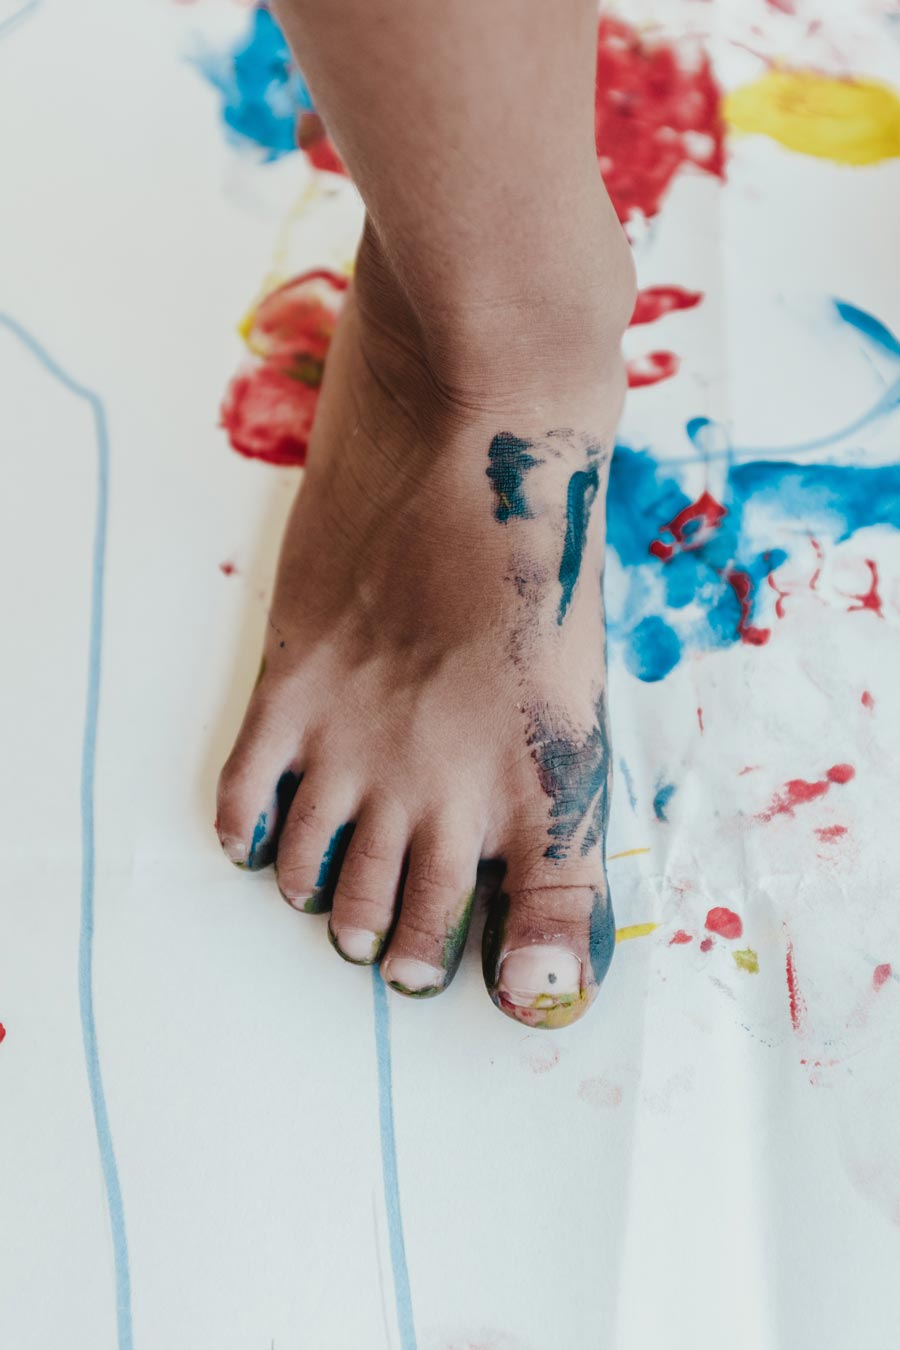 painted-foot-bahai